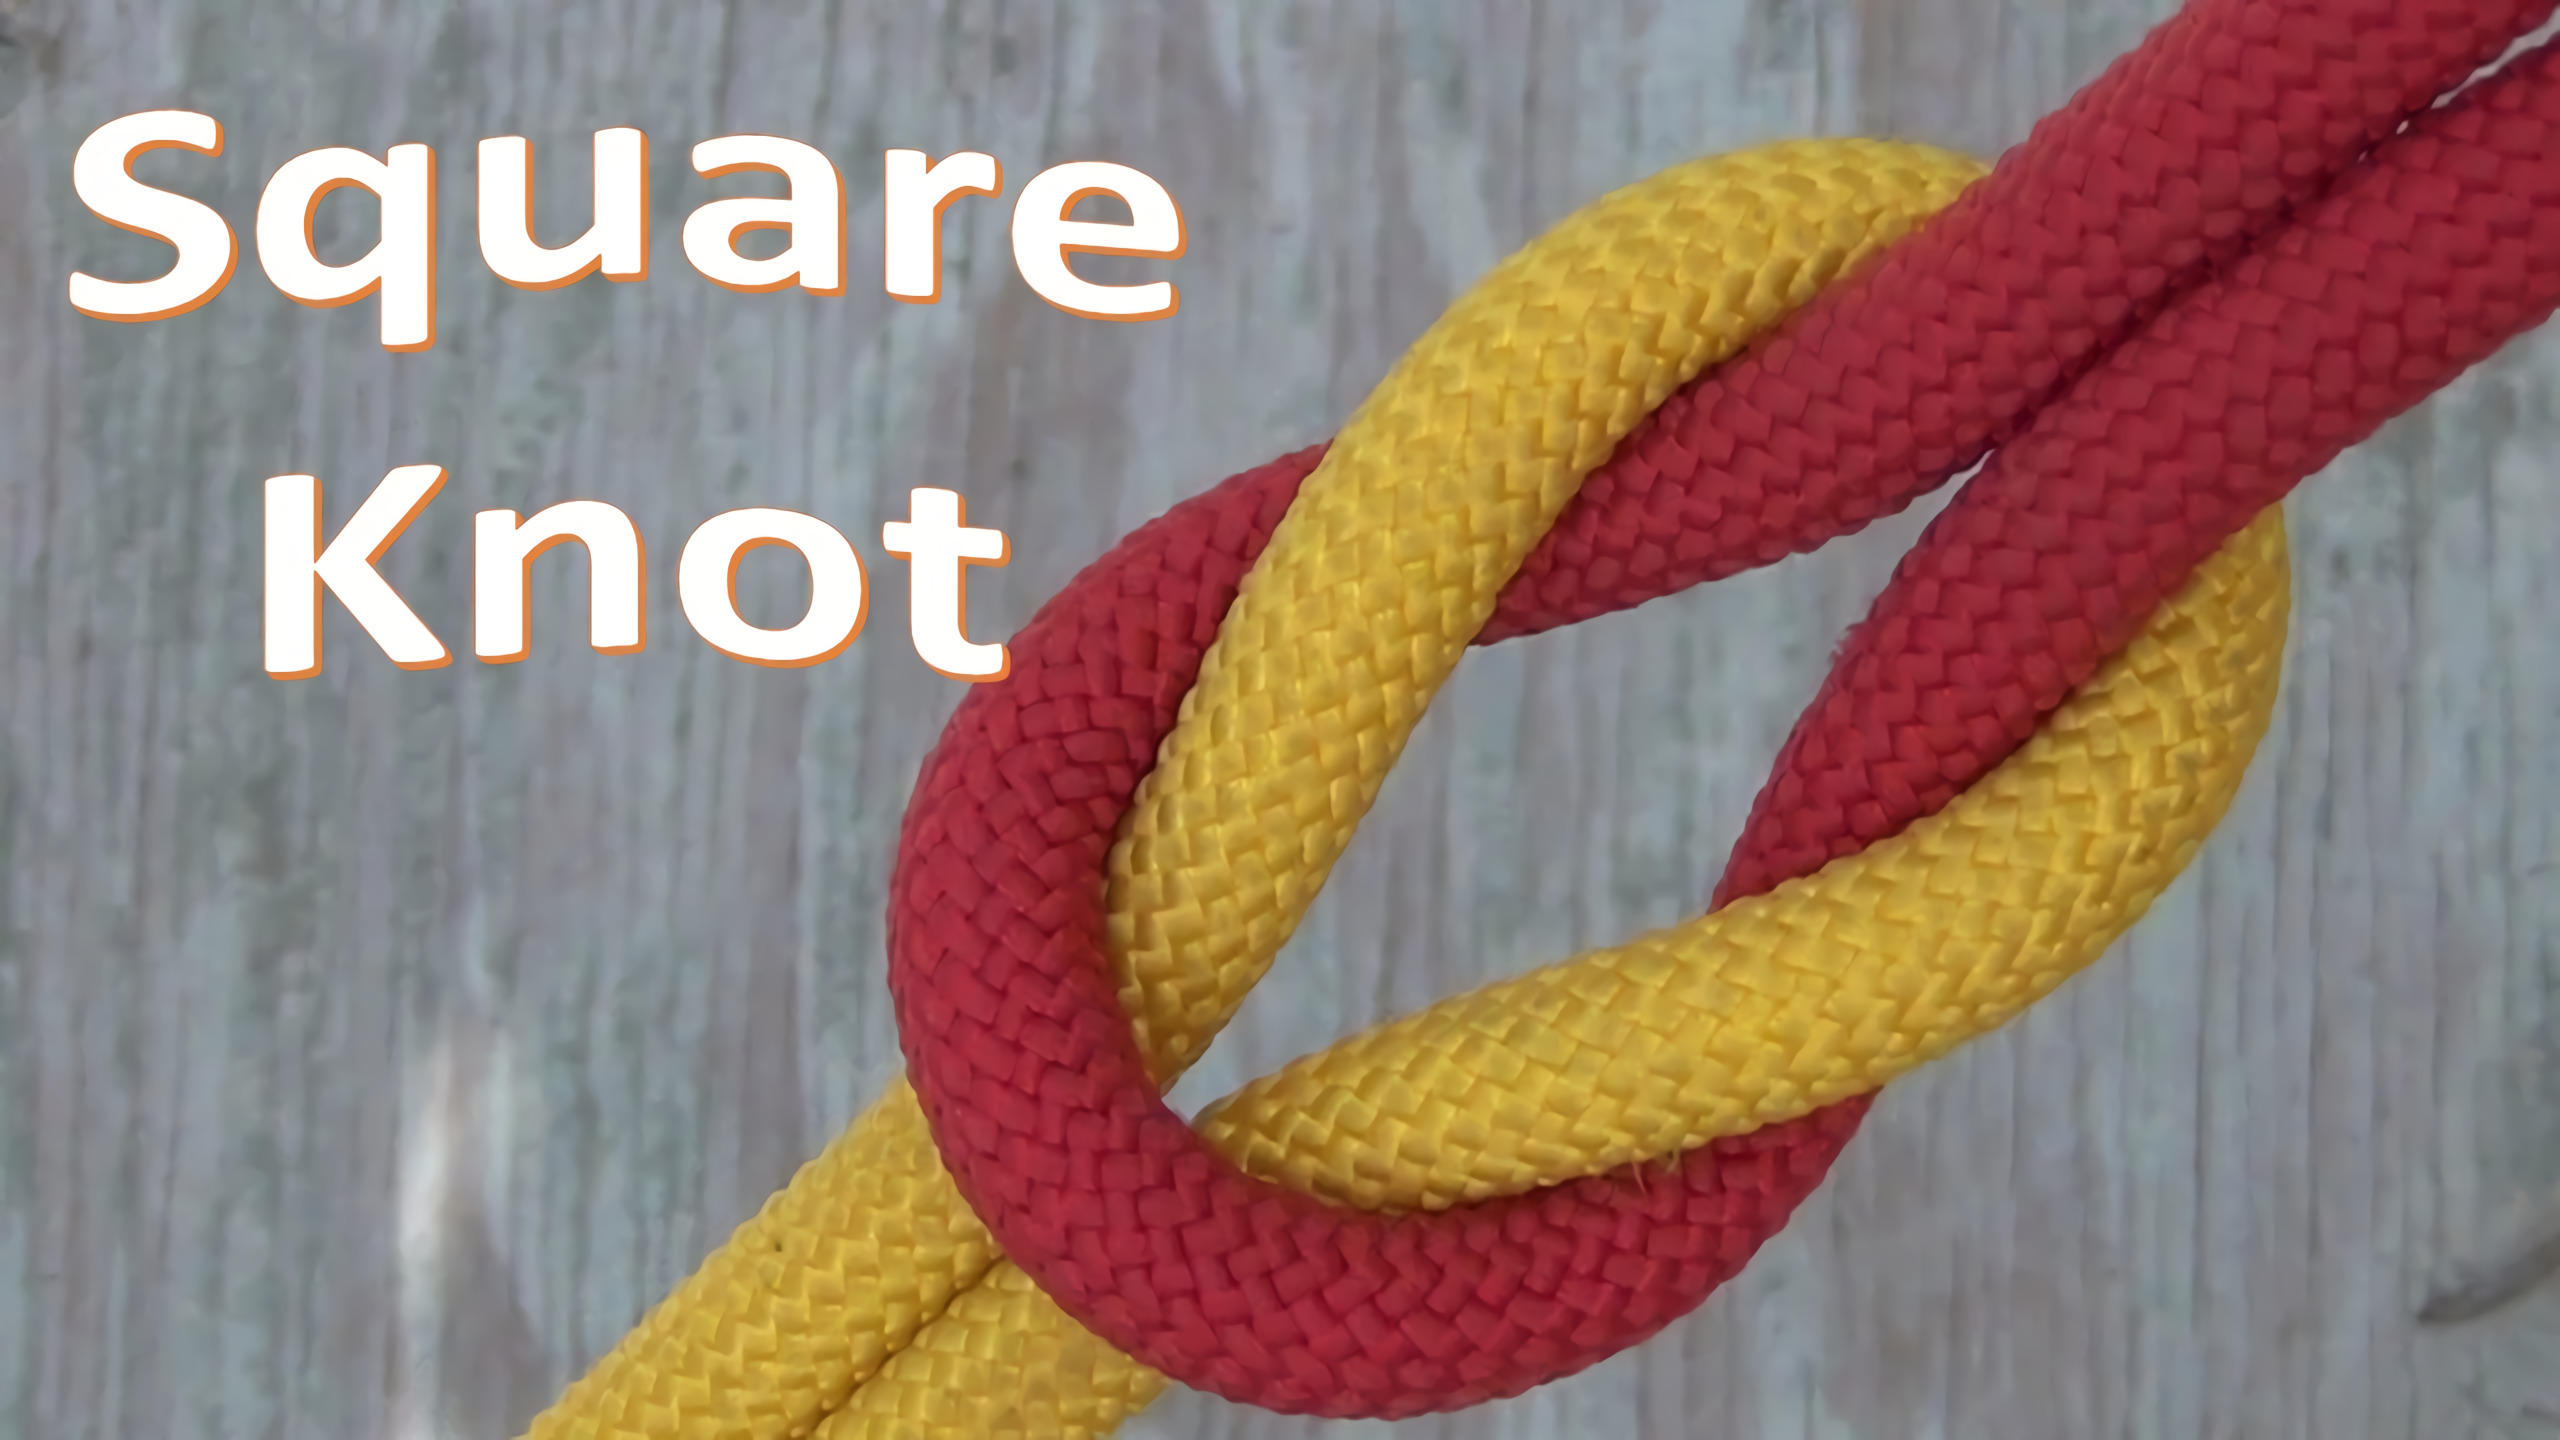 this is what a square knot looks like